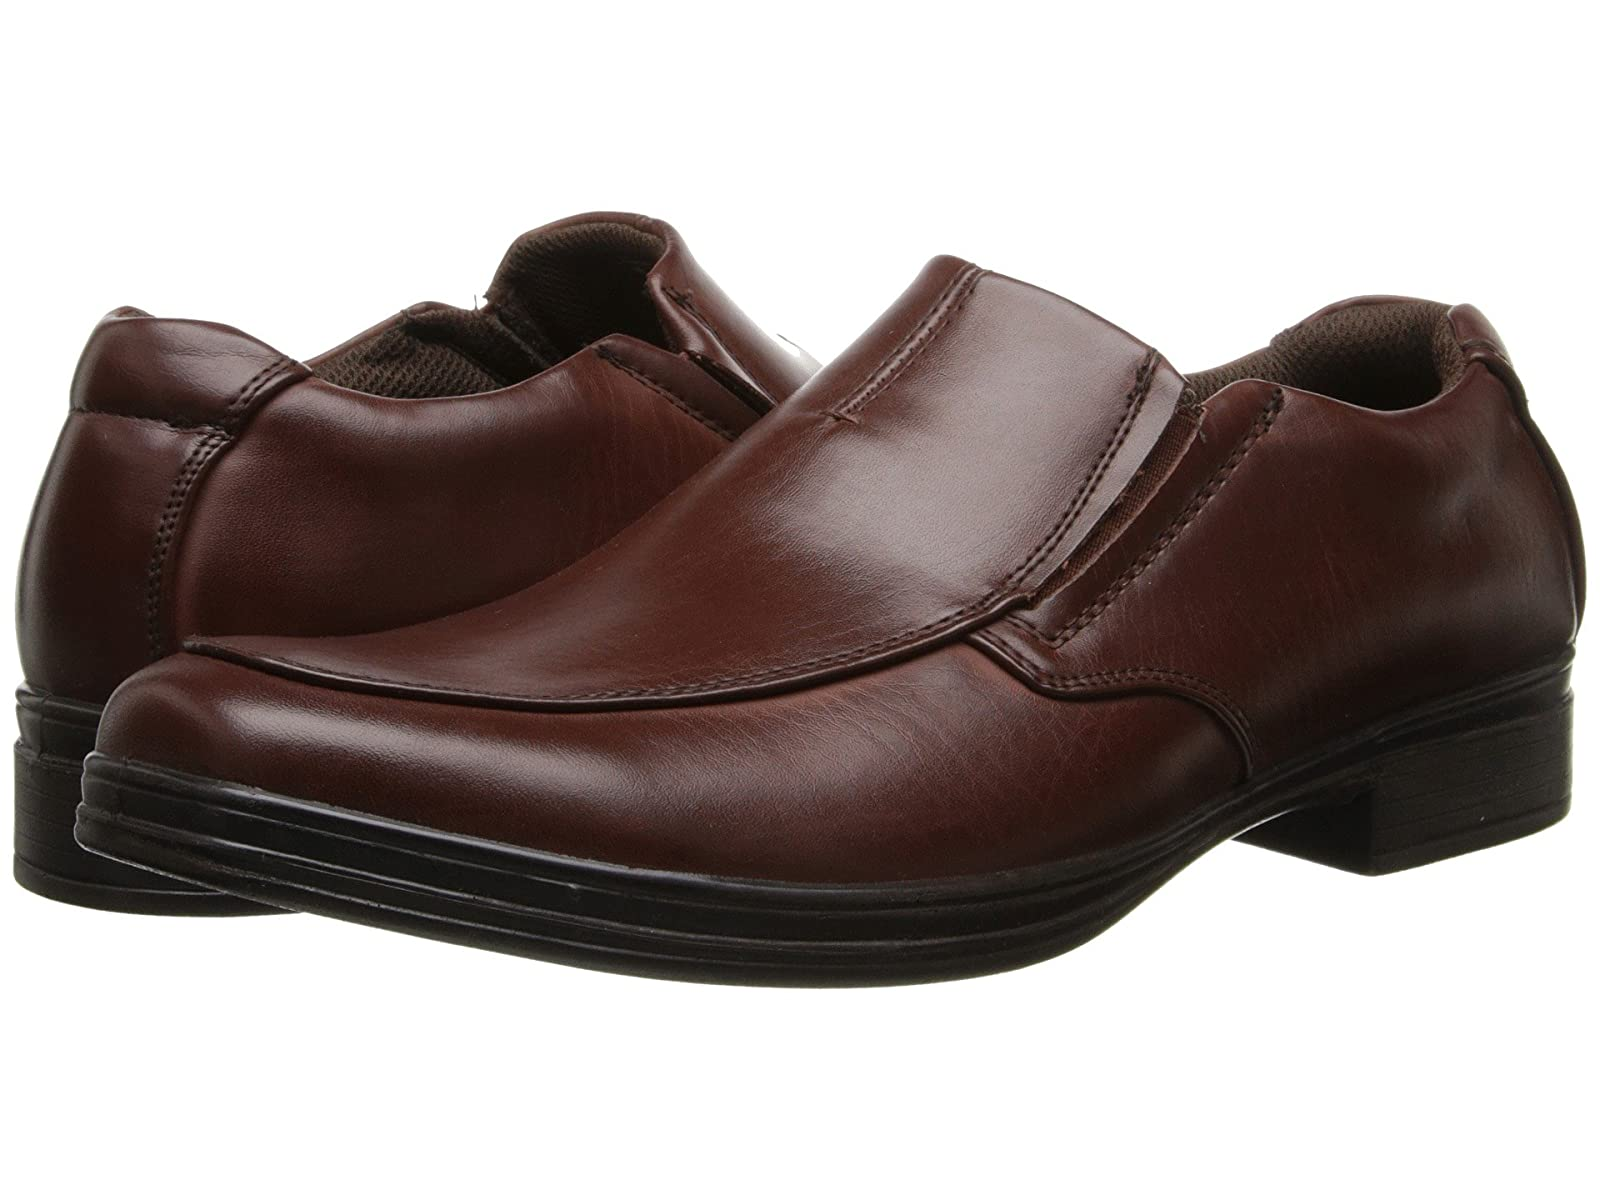 Deer Stags FitAtmospheric grades have affordable shoes